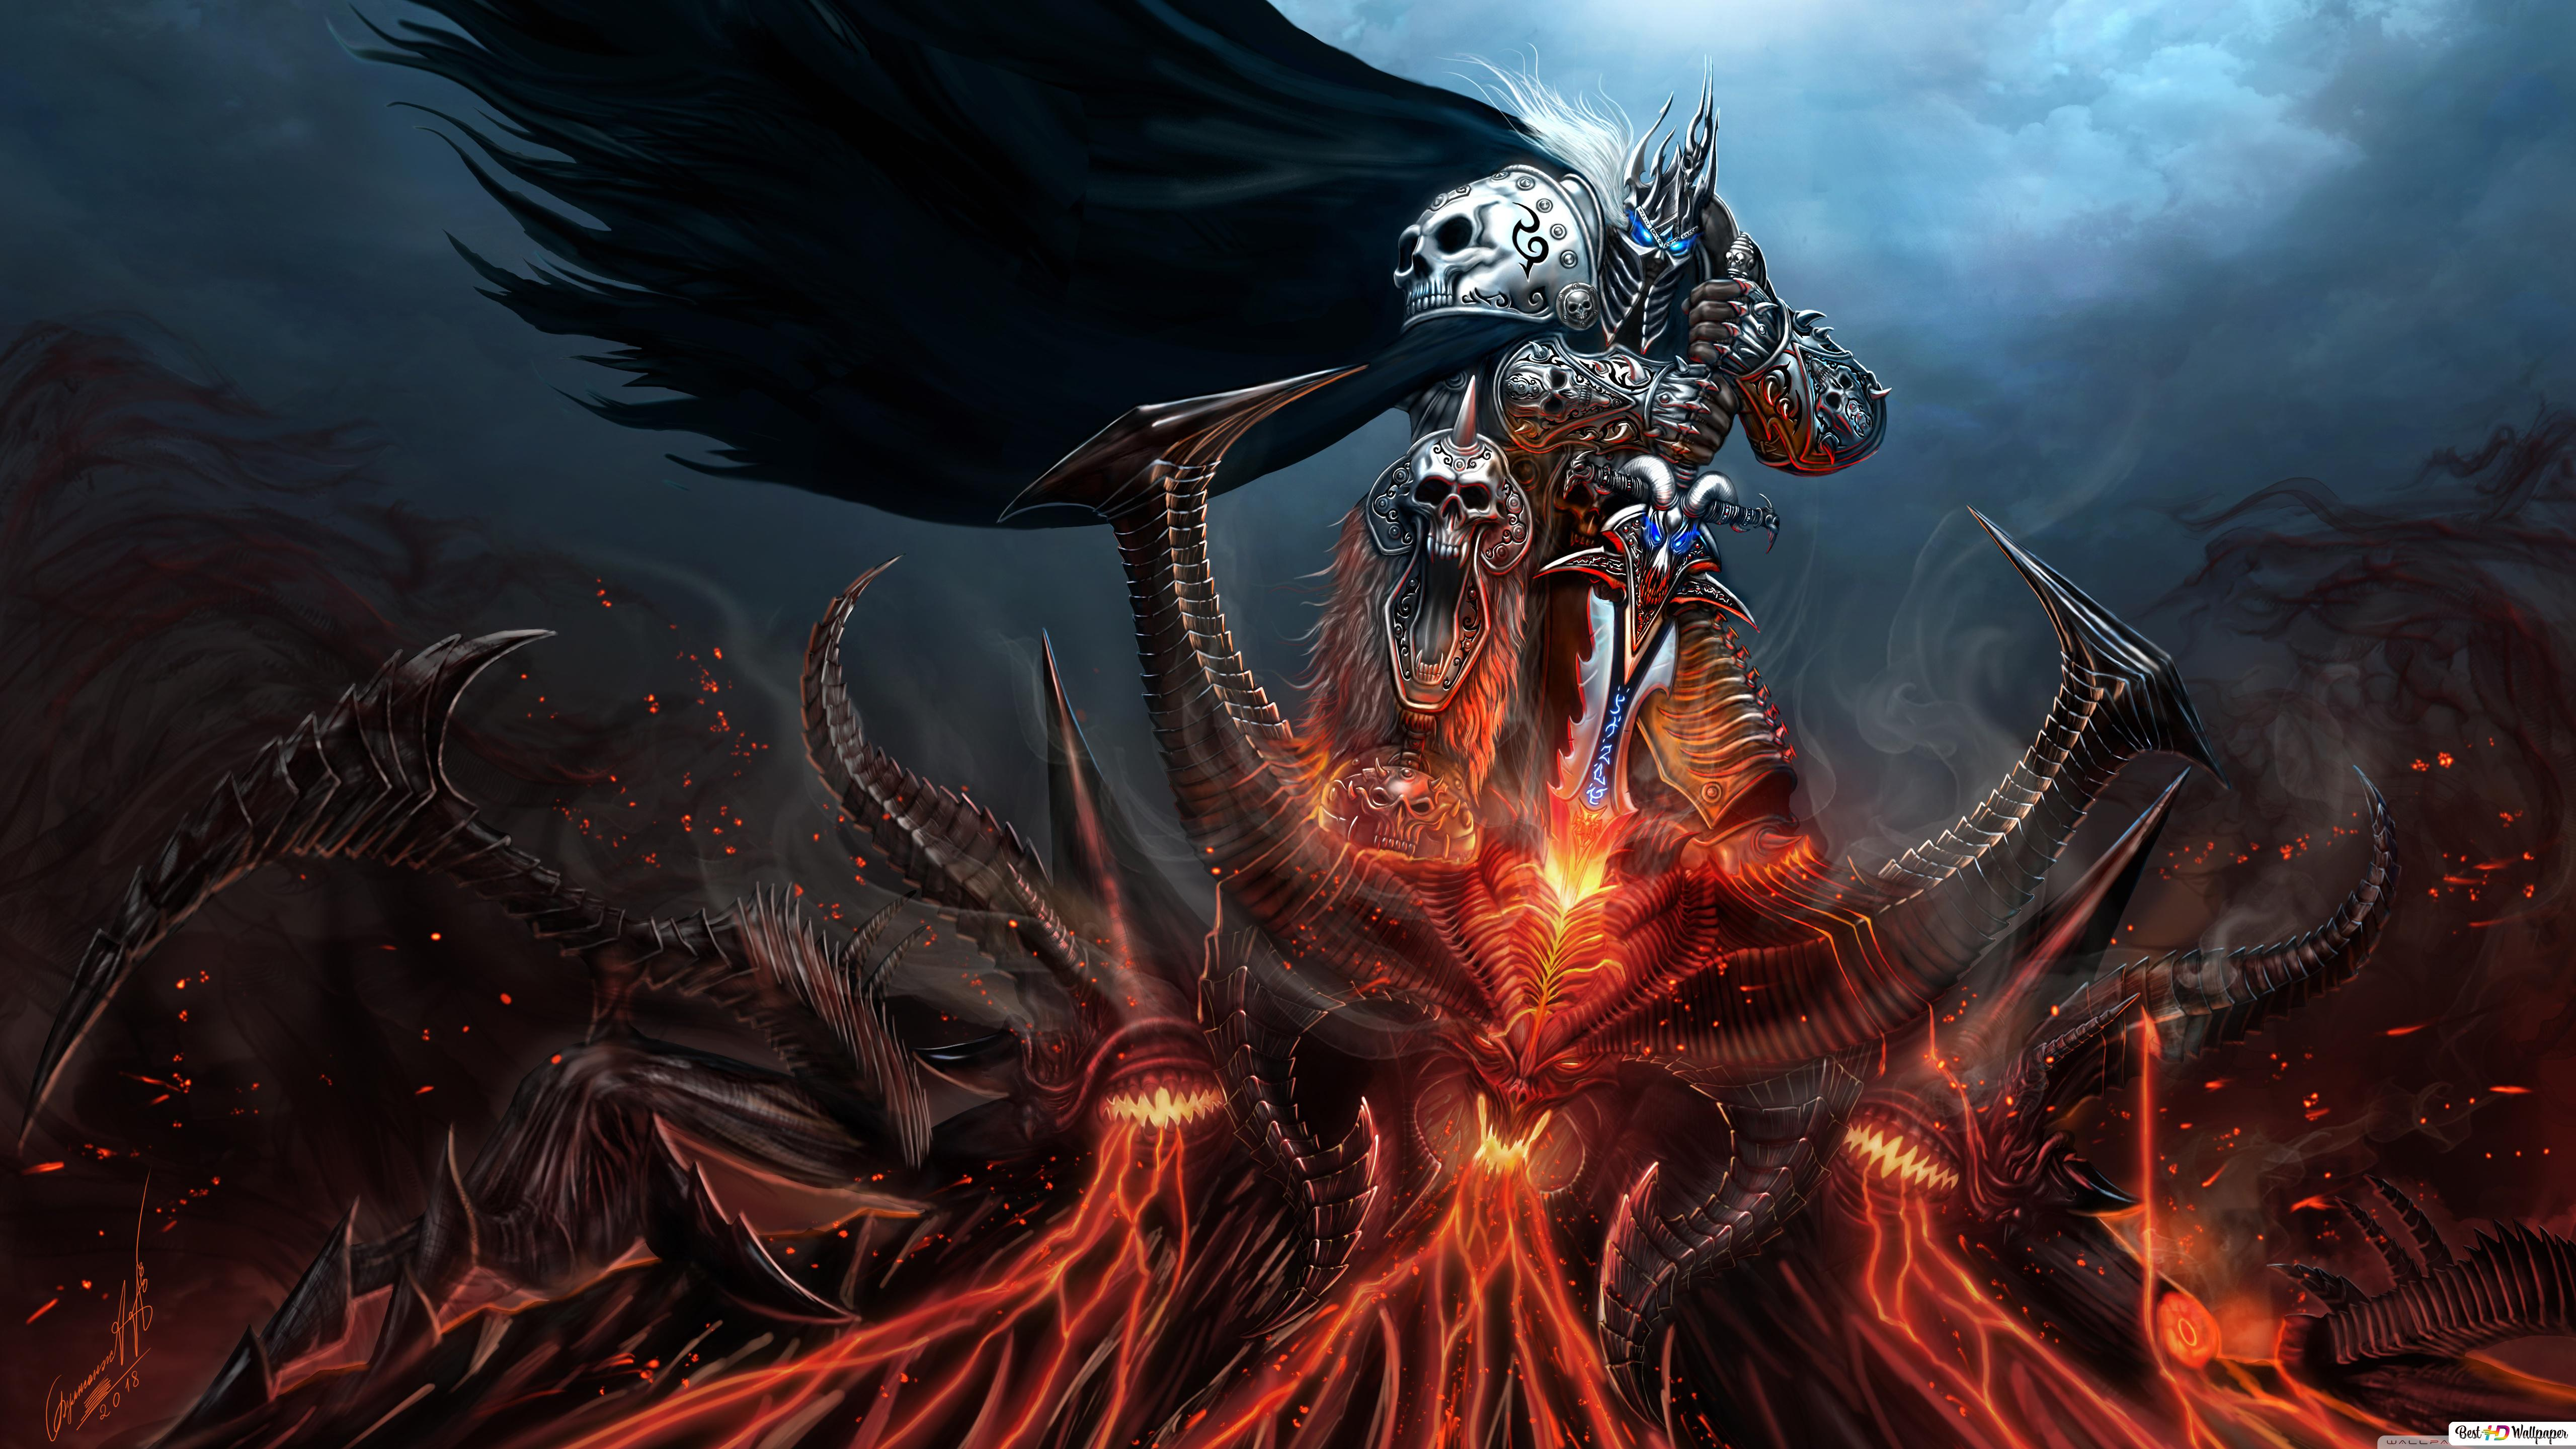 World Of Warcraft Wrath Of The Lich King Hd Wallpaper Download